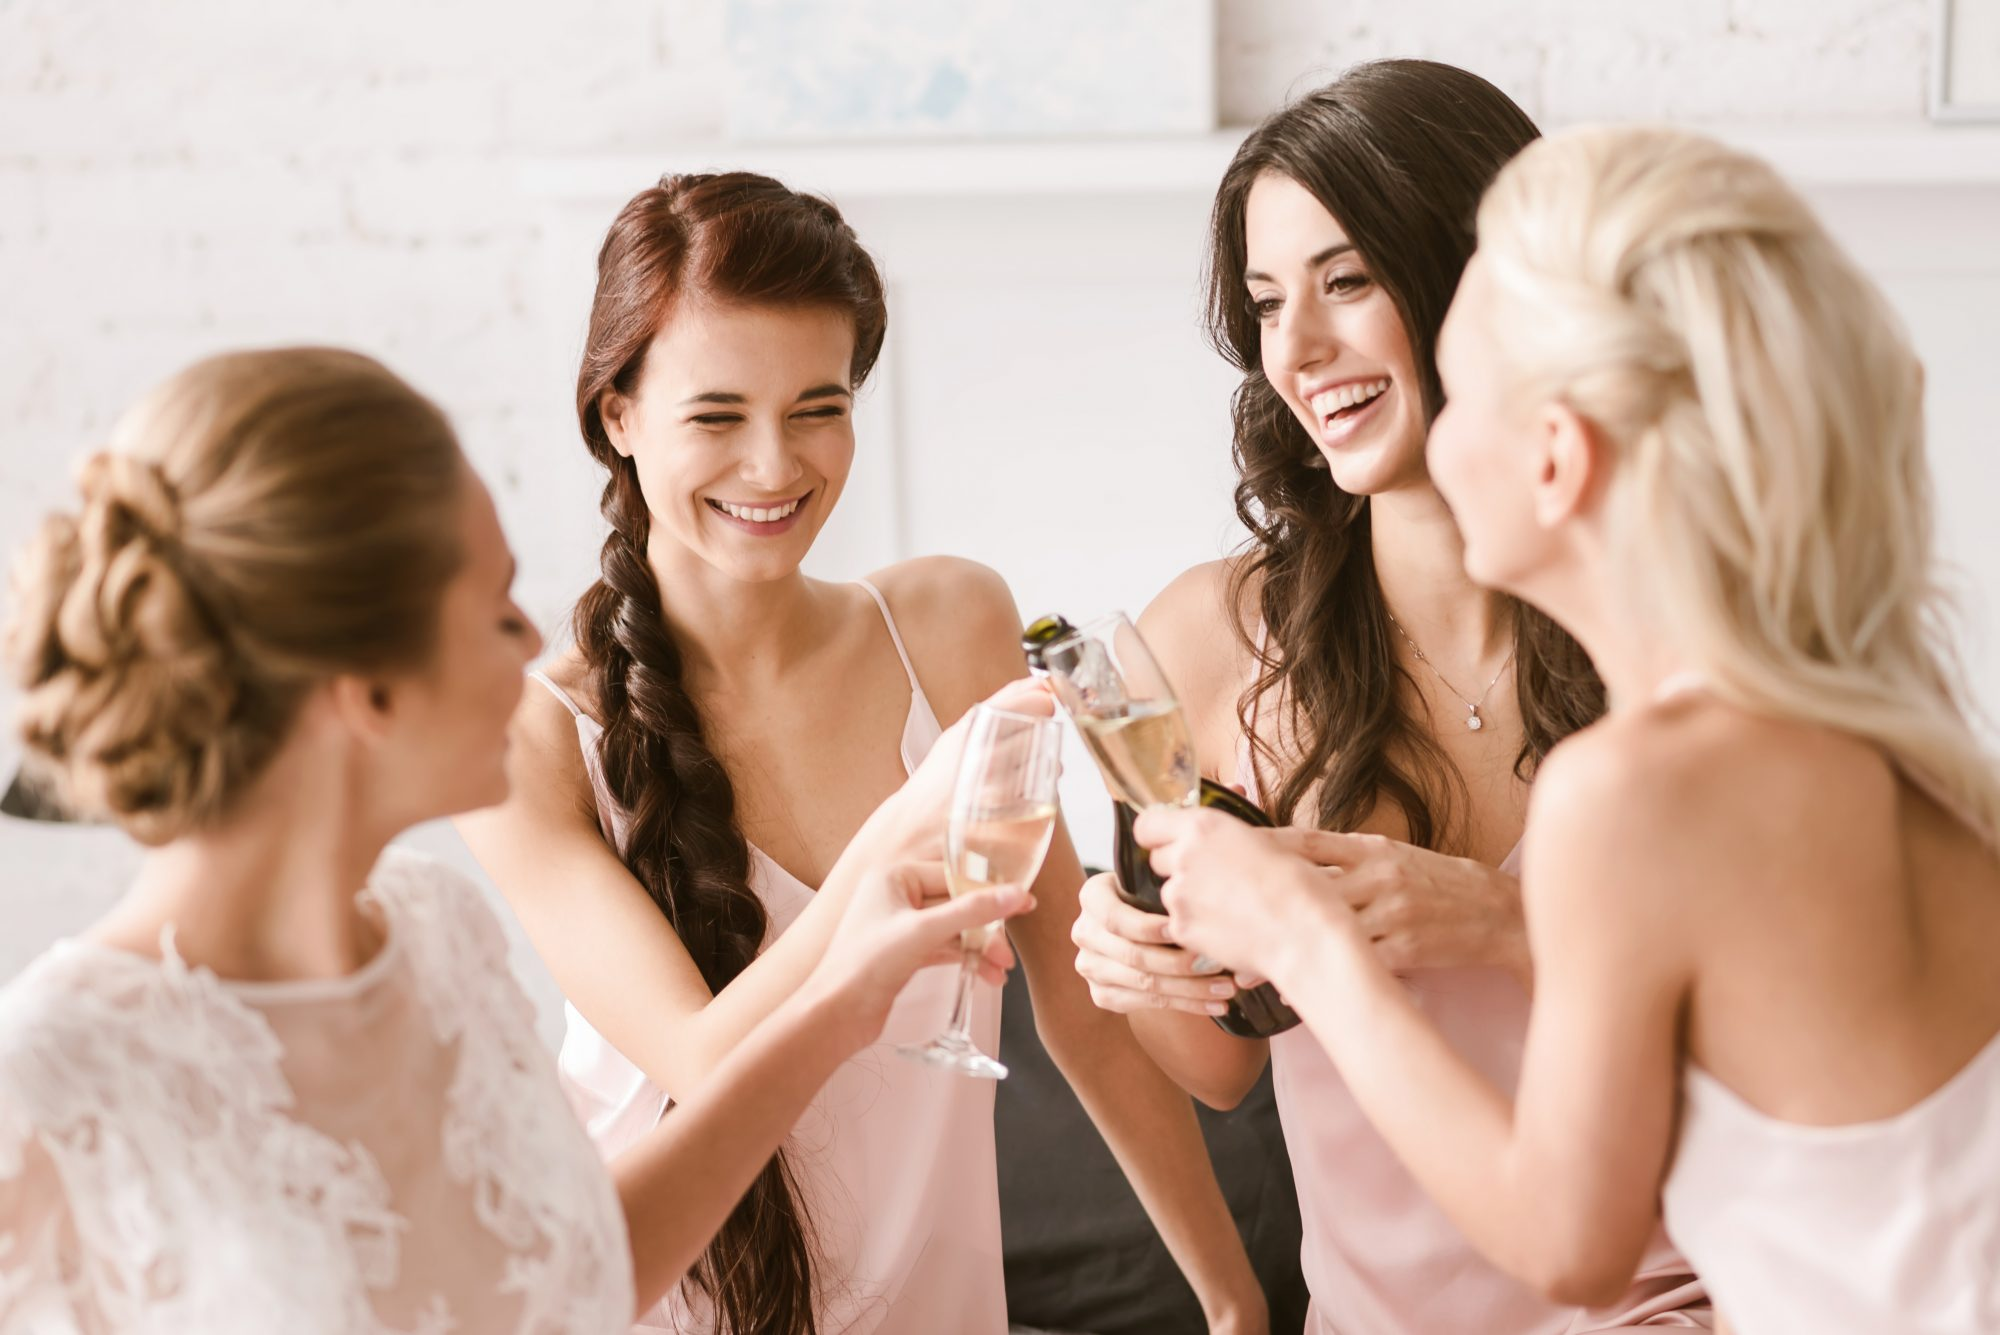 Bridesmaids Getting Ready, Laughing, and Toasting with Champagne